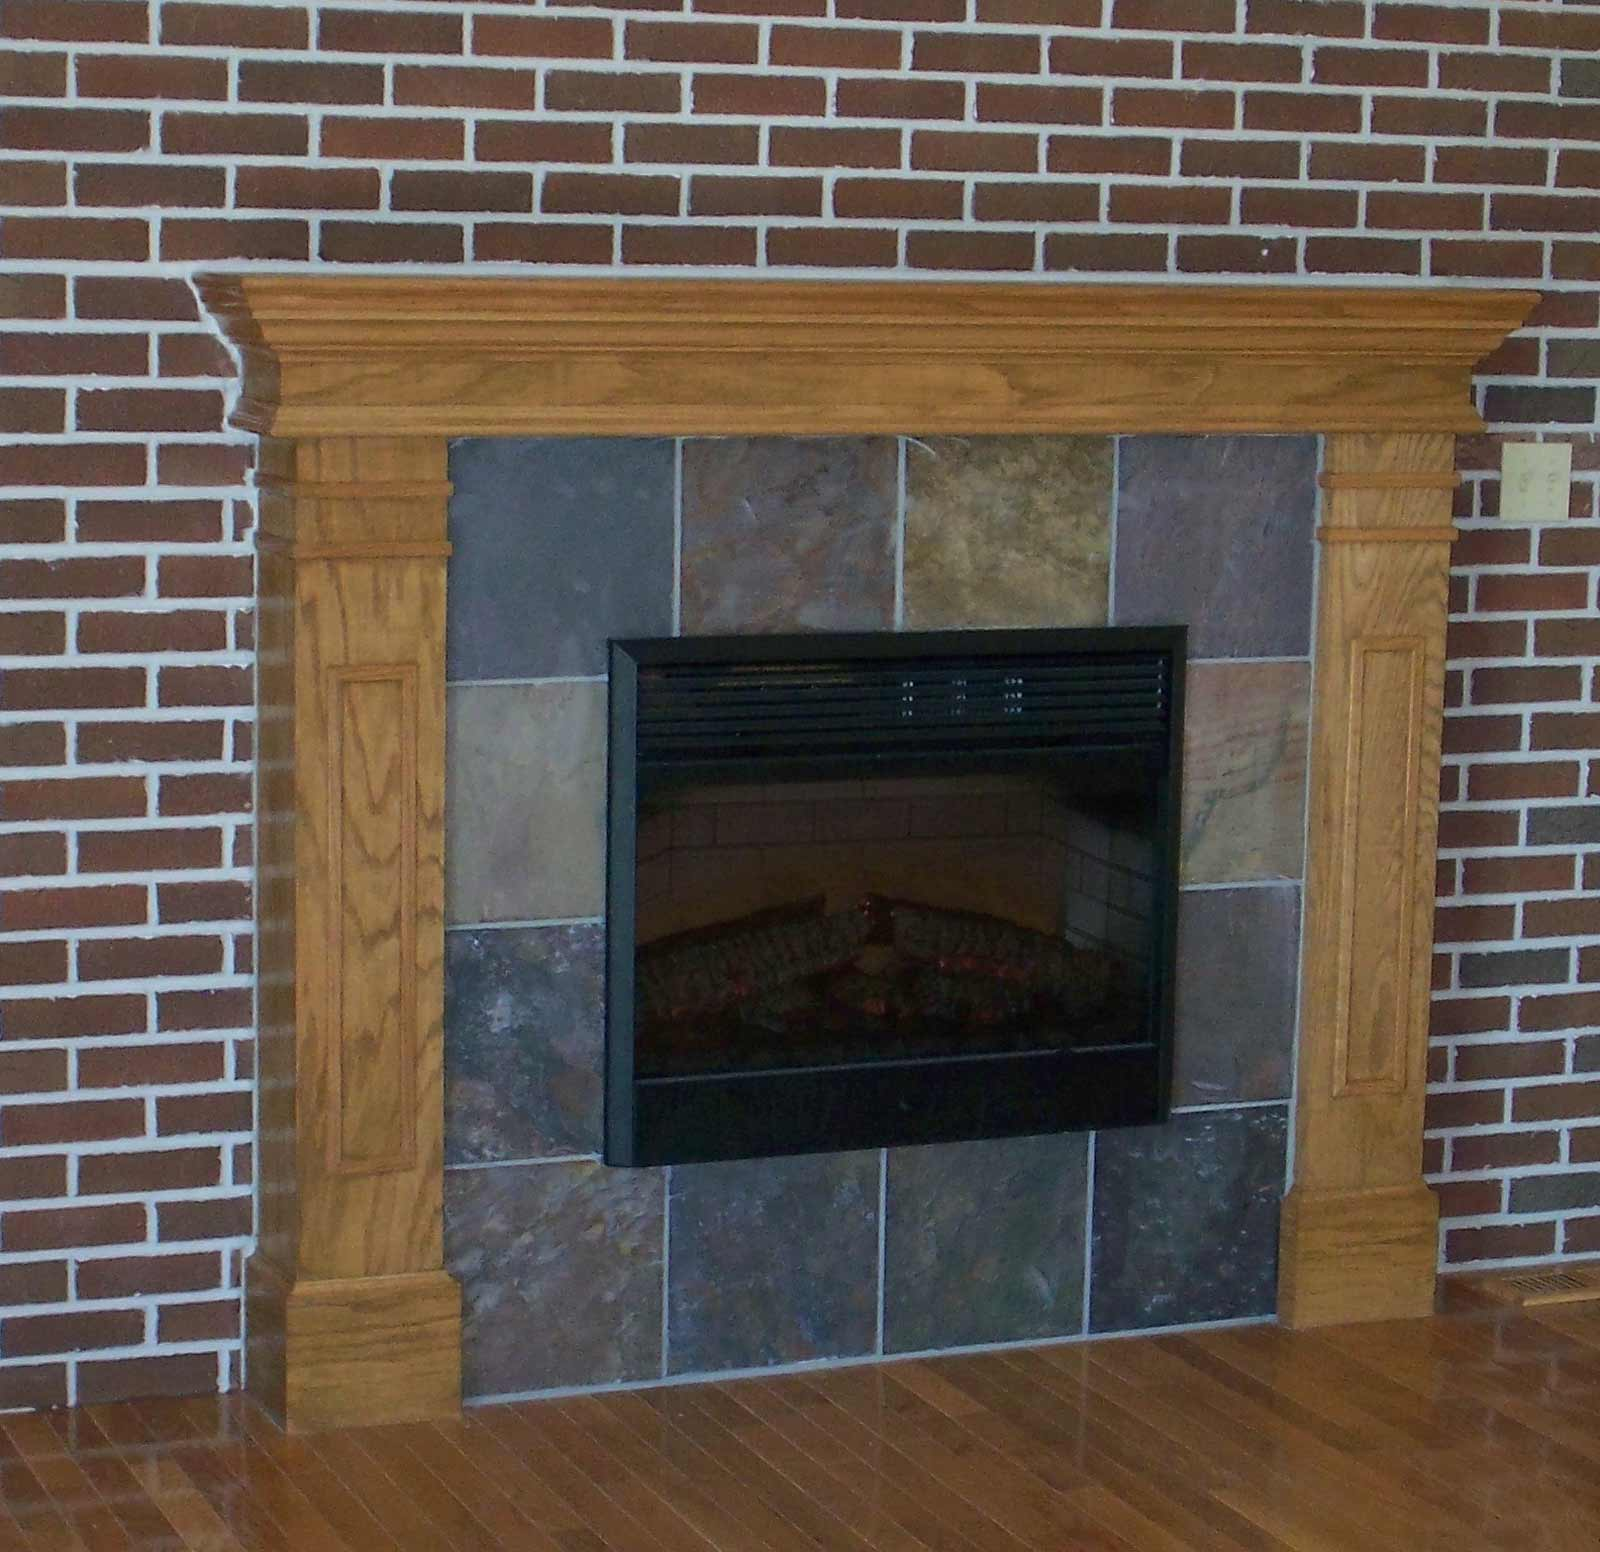 Brick ceramic tile feel the home - Tiling a brick fireplace ...